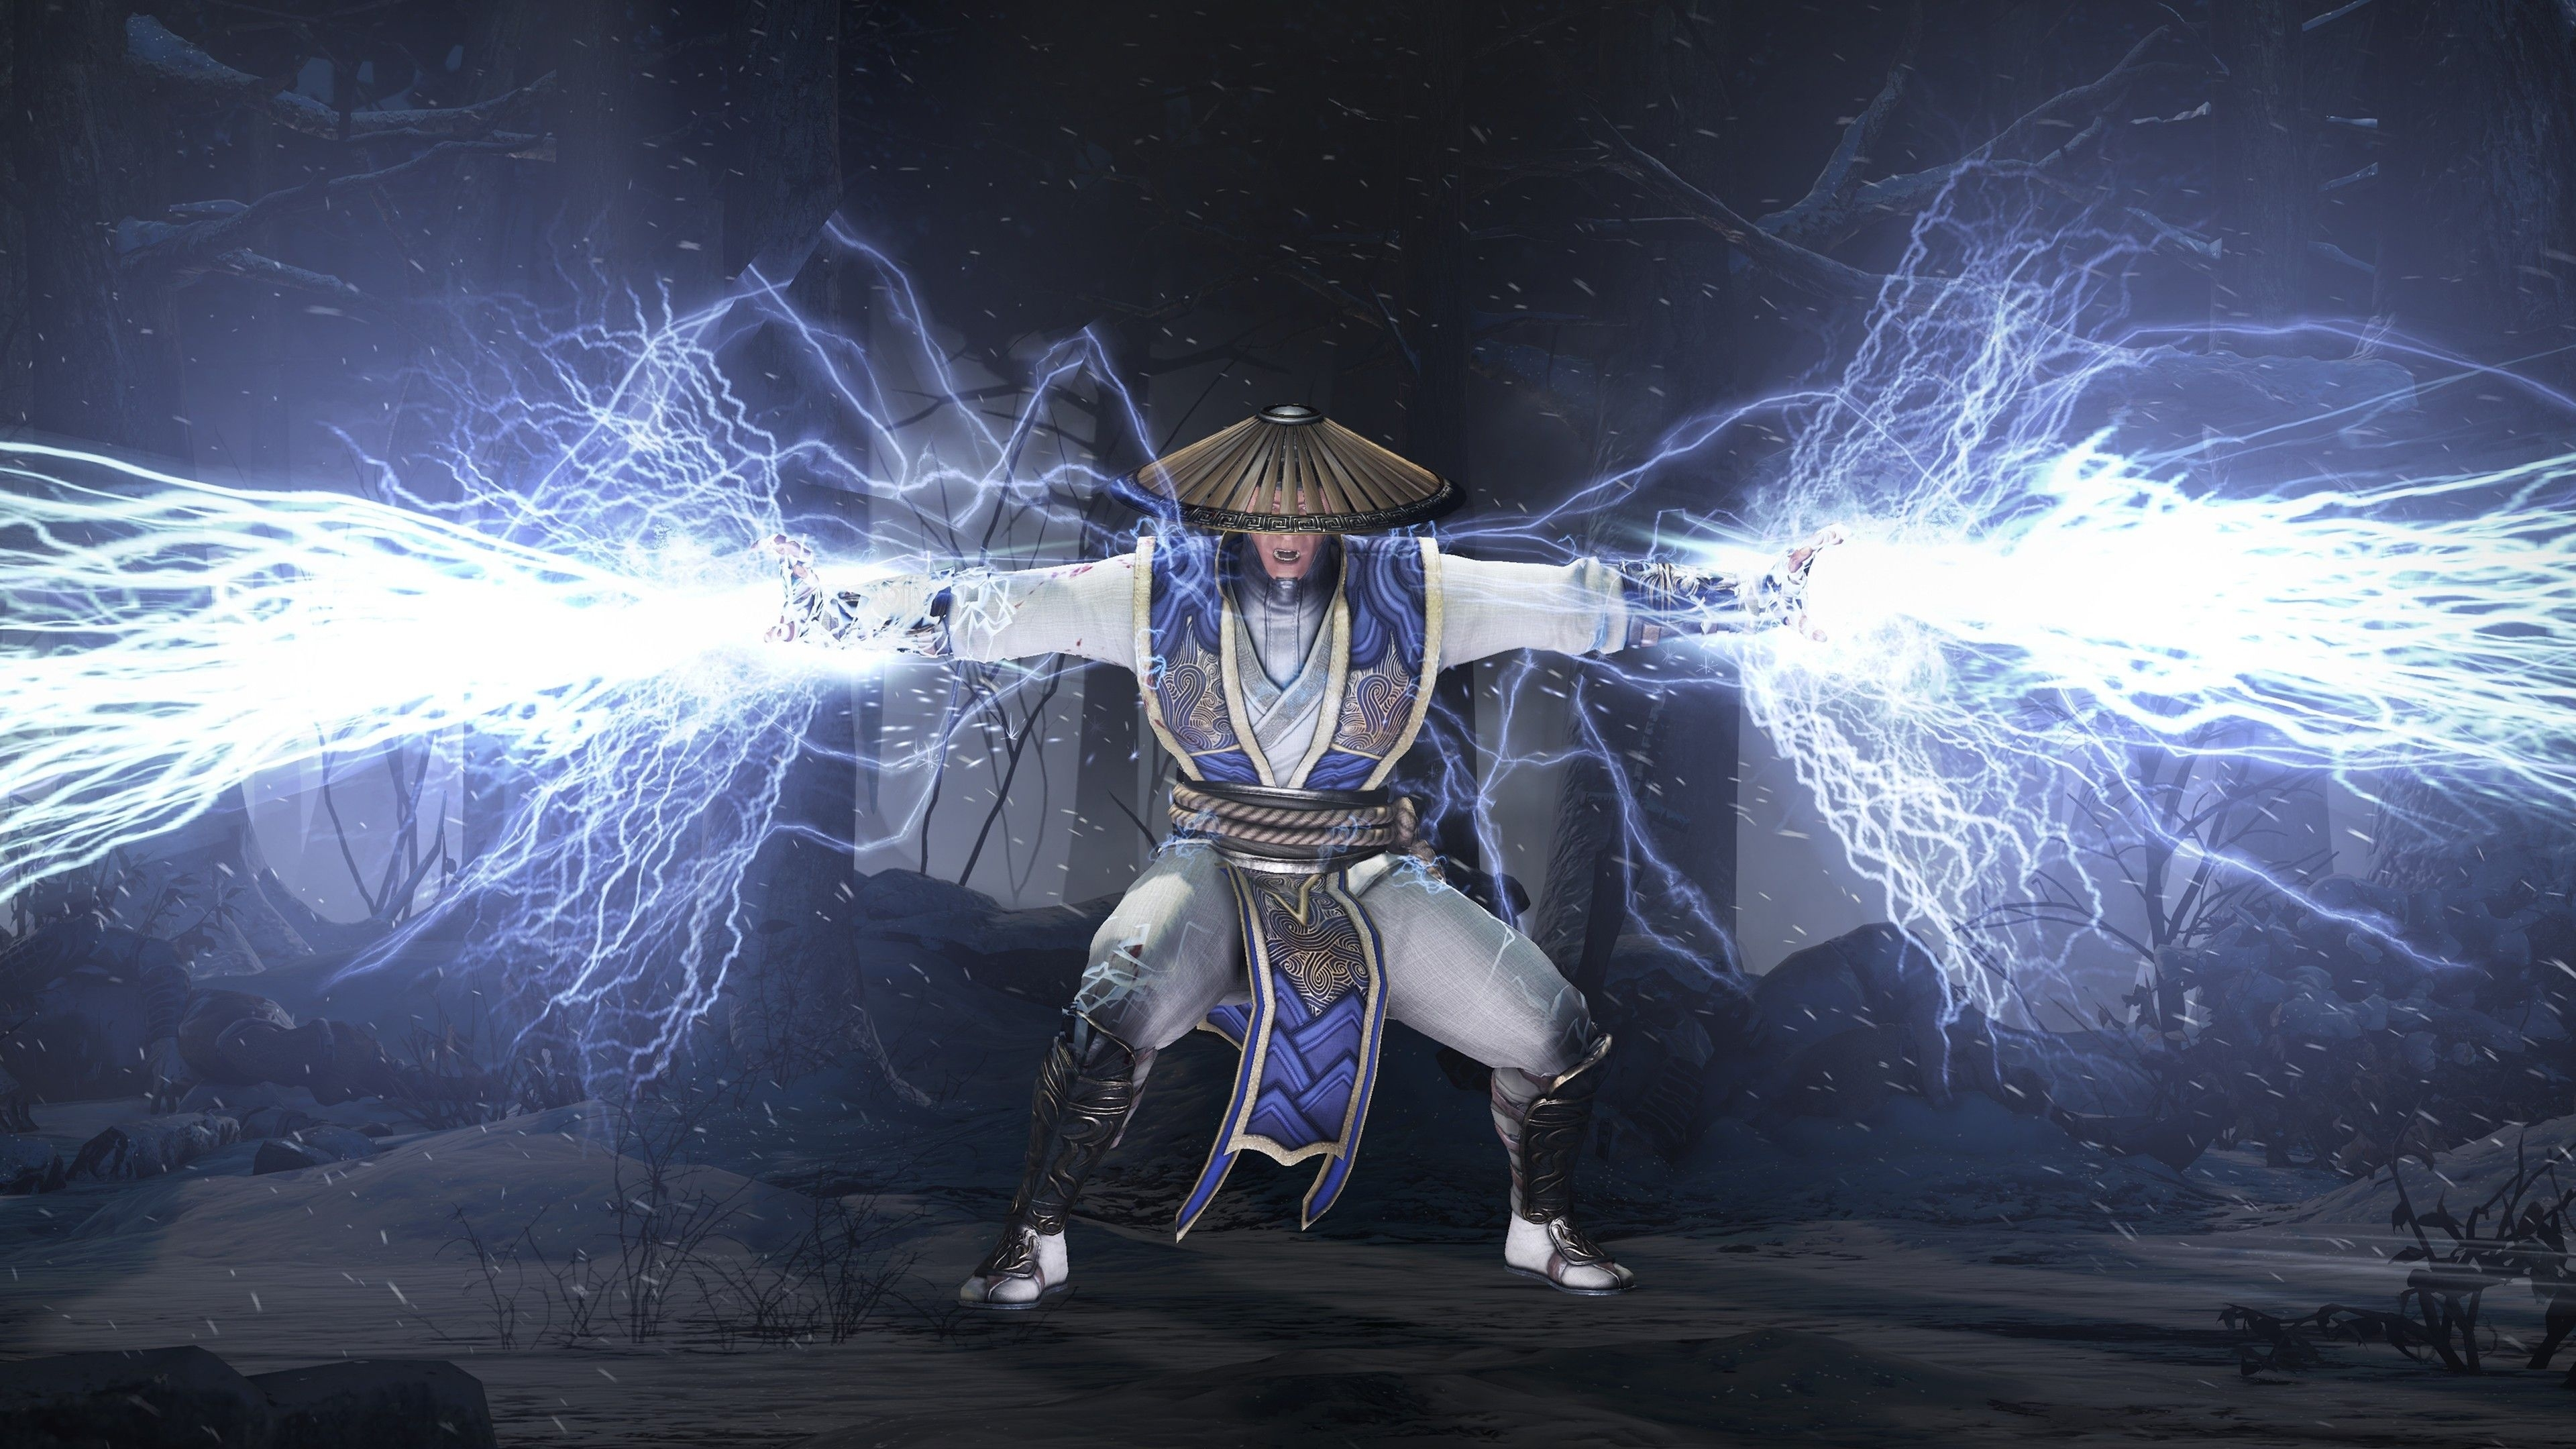 mortal kombat raiden wallpaper | fantasy | pinterest | mortal kombat